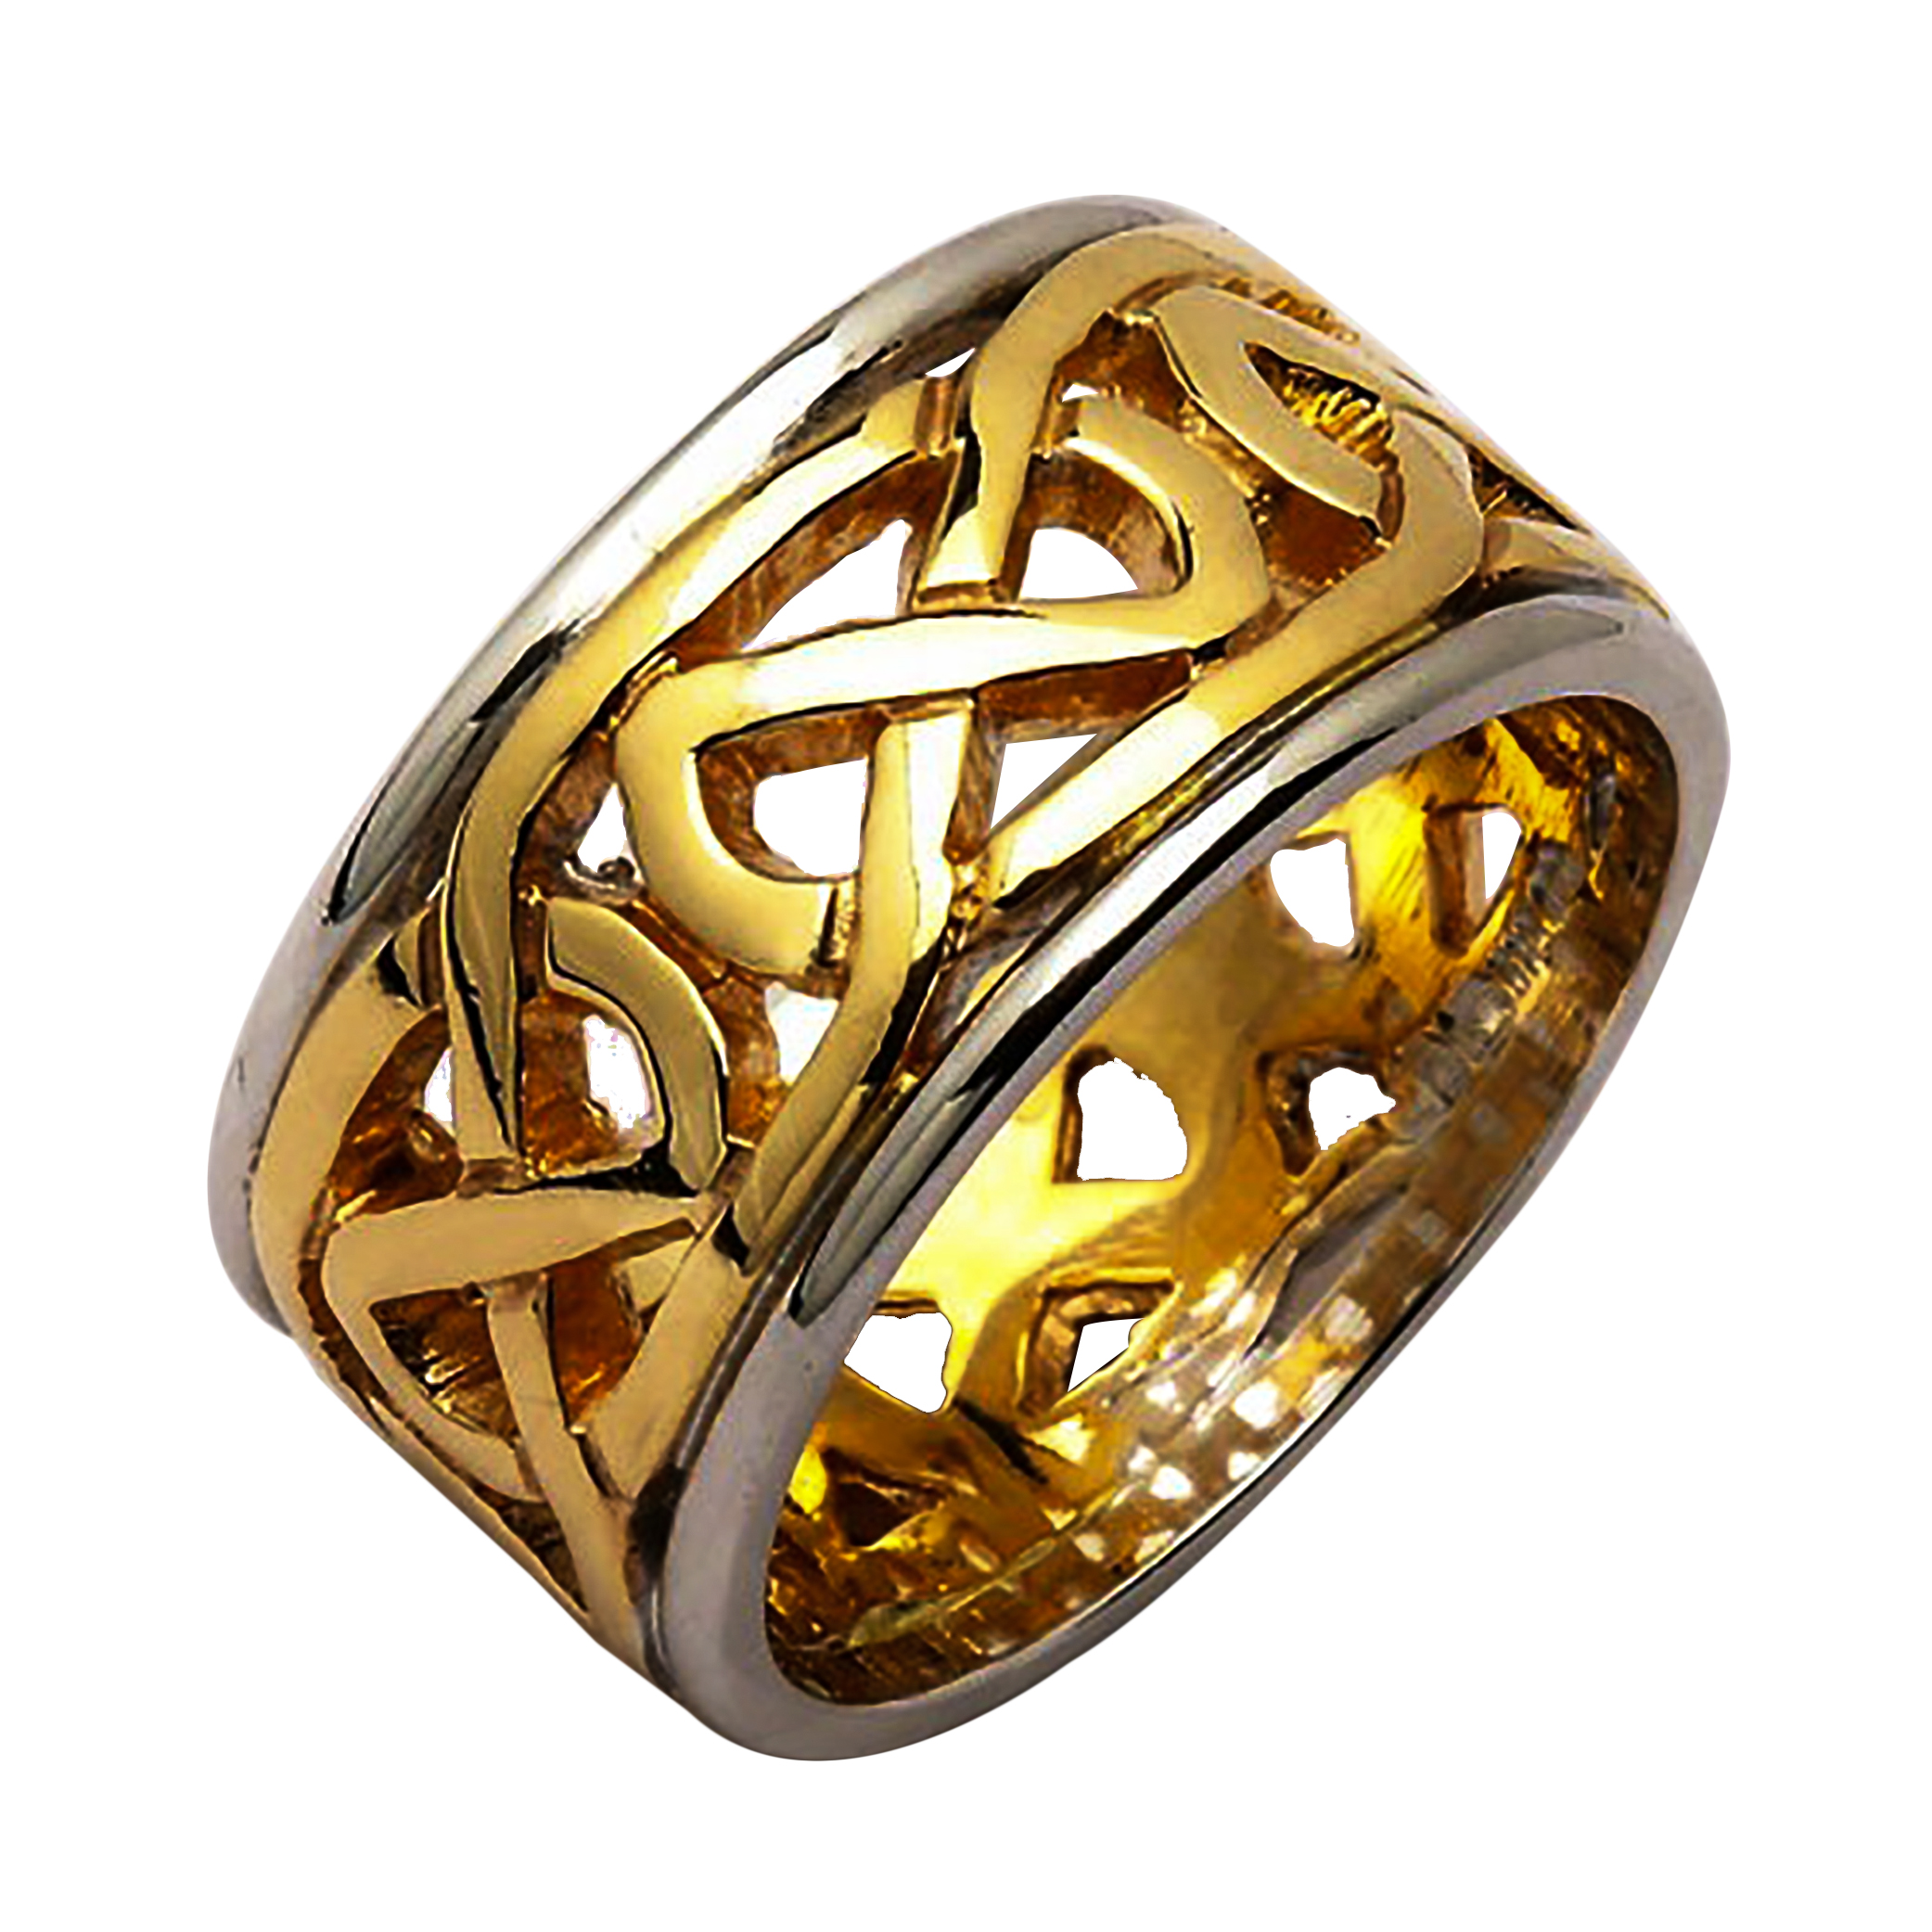 trinity double celtic rings wedding authentic dublin mccormack r ring jewellery shop irish gold c white knot